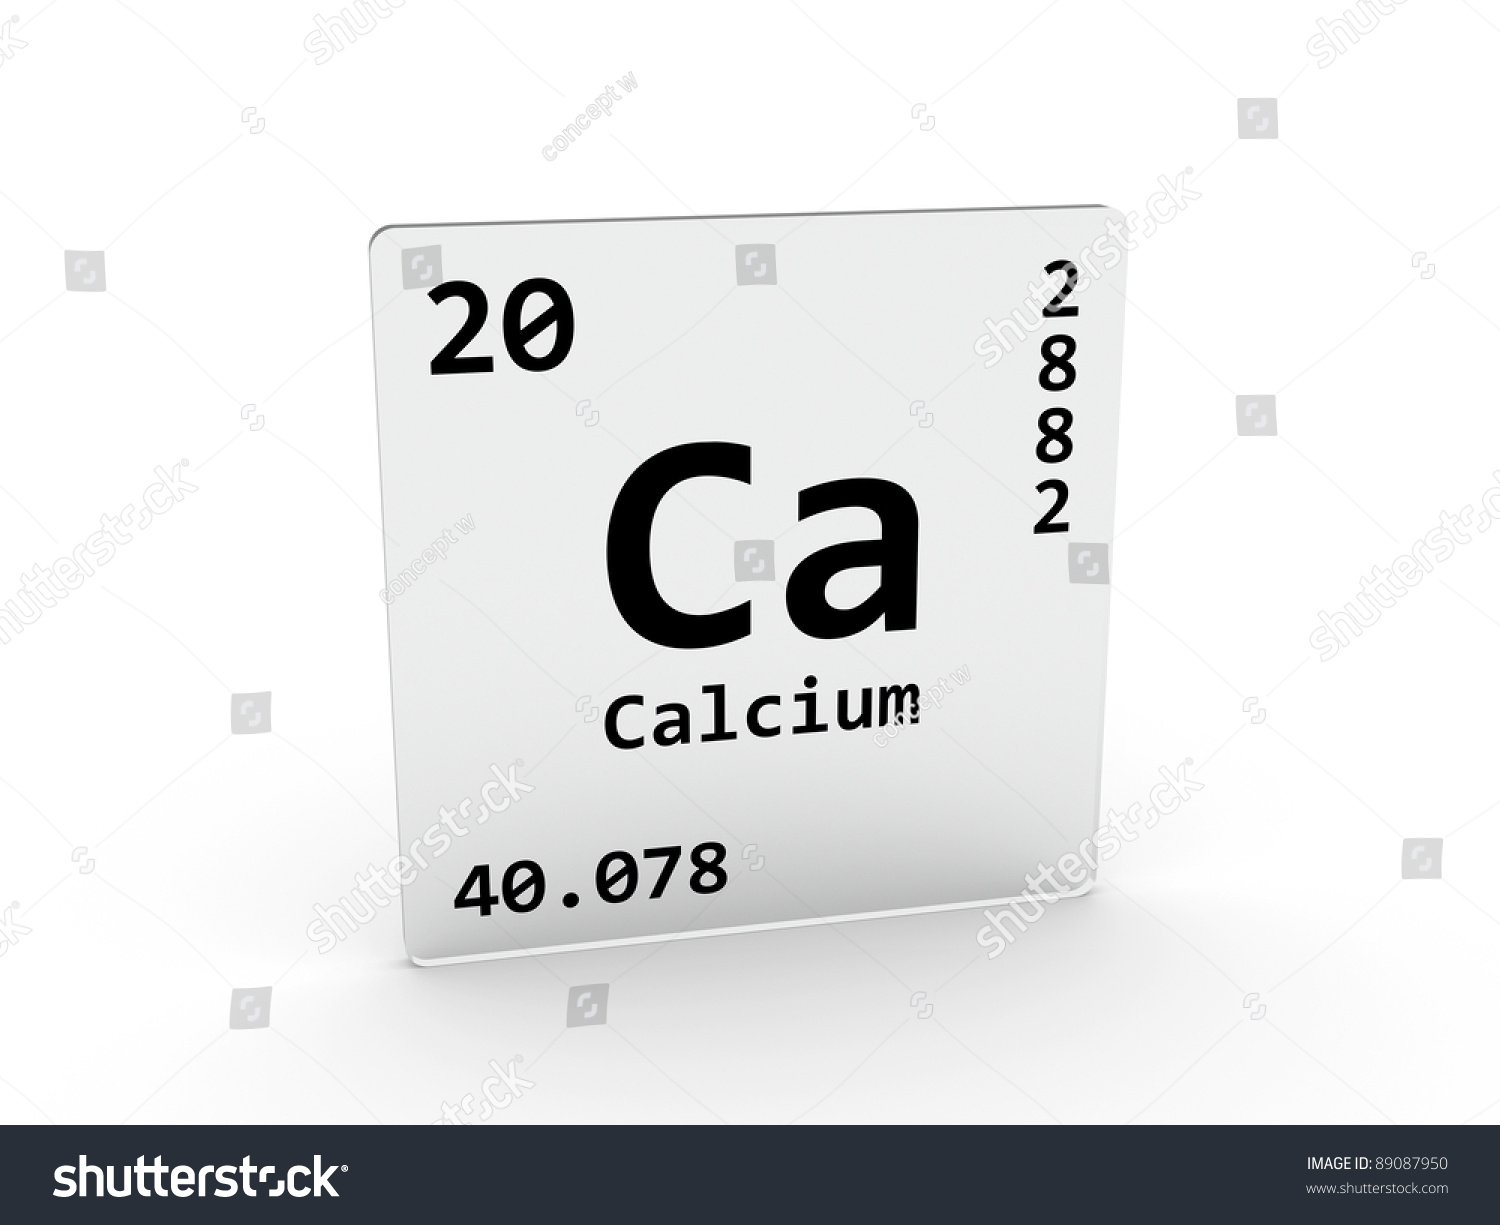 Calcium symbol ca element periodic table stock illustration 89087950 calcium symbol ca element of the periodic table urtaz Gallery